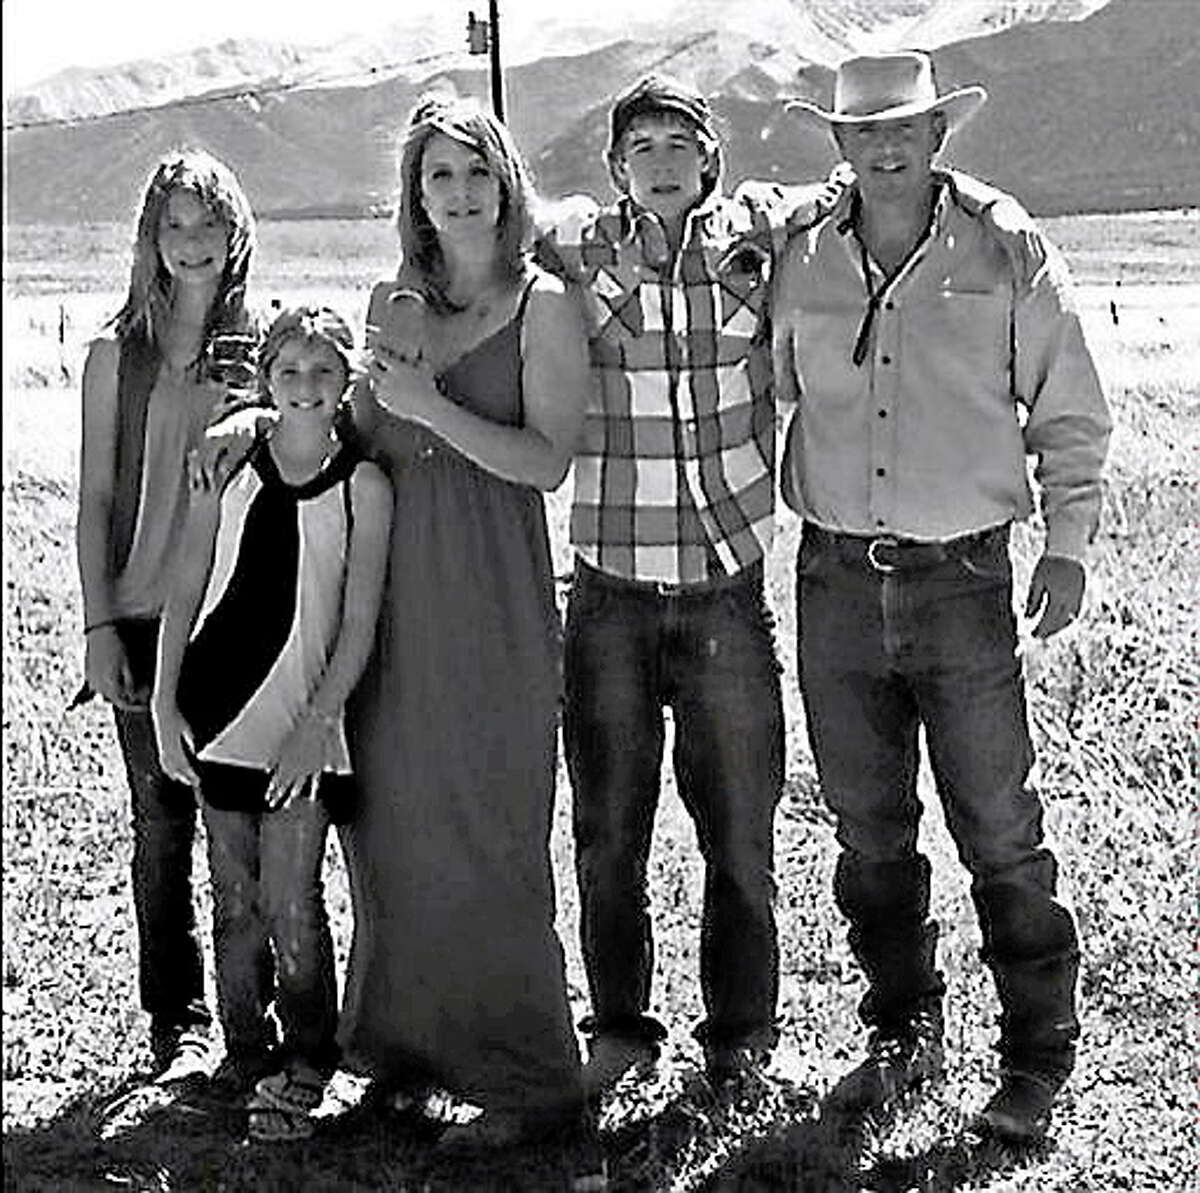 This 2012 photo provided by the Johnson family shows Dawna Johnson, 45, third left, and Dwayne Johnson, 46, right, with their children, from left, Kiowa-Rain Johnson, 18, Gracie Johnson, 13, and Dakota Johnson, in front of Mount Princeton in Colorado. Dwayne, Dawna and Kiowa-Rain Johnson were killed in Monday?s Sept. 30, 2013, rockslide near Buena Vista, Colo. Gracie Johnson was rescued from the rubble and hospitalized in Denver. Also killed were Baigen Walker, 10, and Paris Walkup, 22, both of Birch Tree, Mo. They were nephews of Dwayne and Dawna Johnson. (AP Photo/Johnson Family)